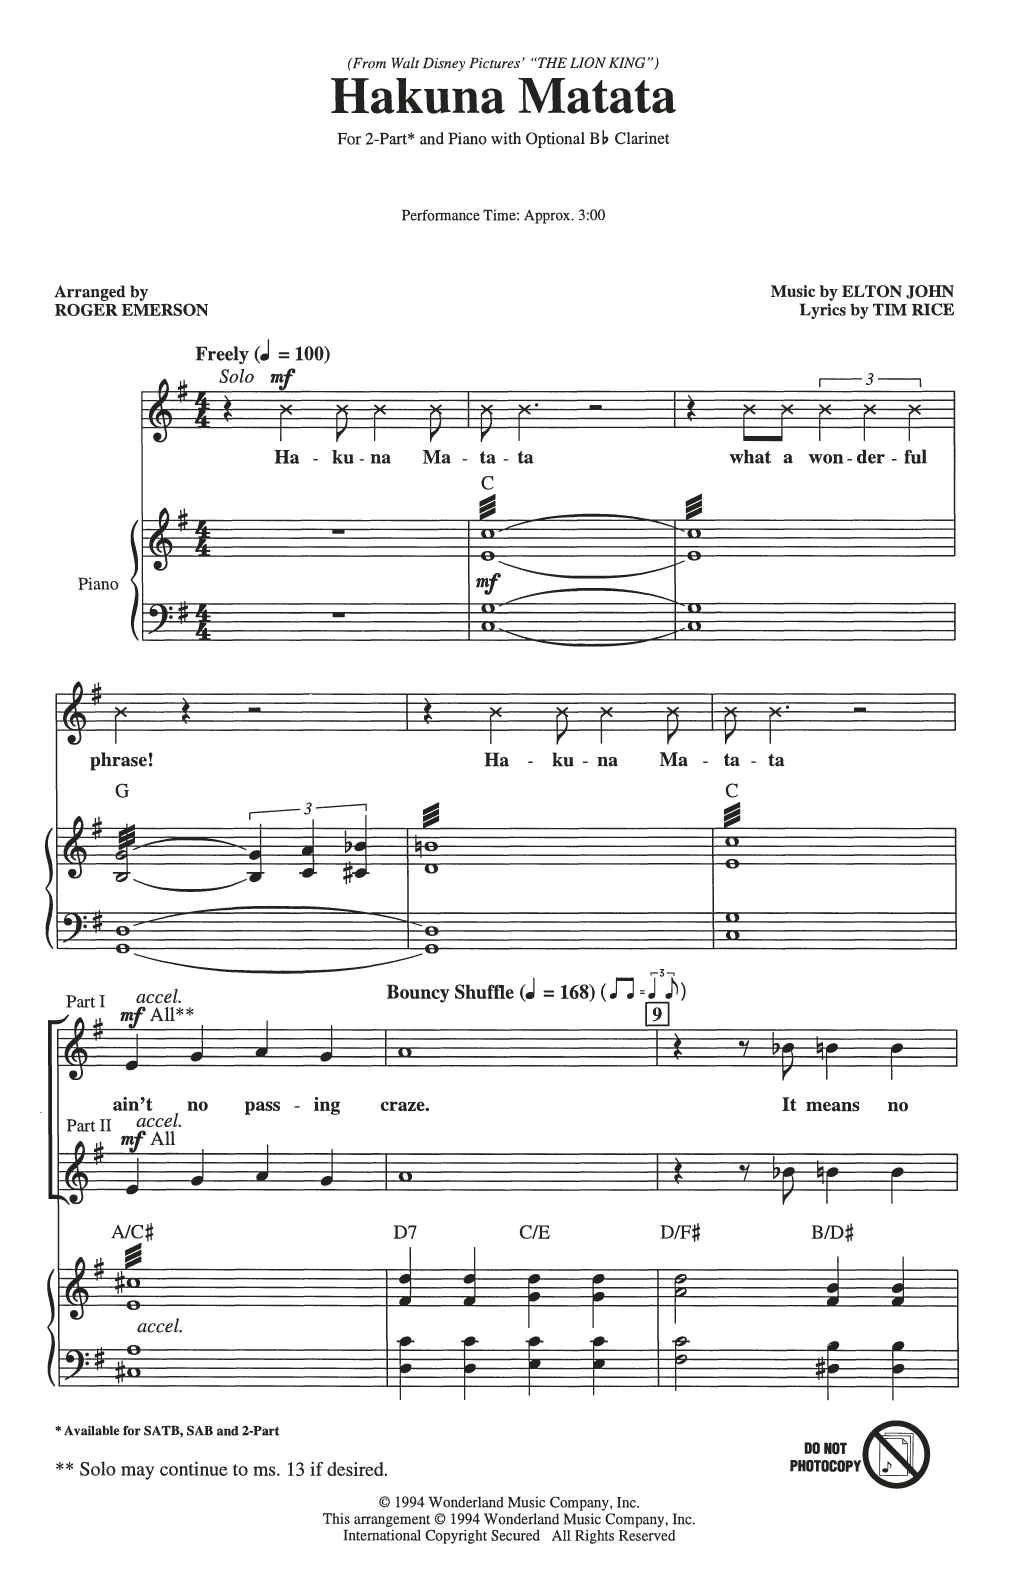 Hakuna Matata (from Disney's The Lion King) (arr. Roger Emerson) Partituras Digitales